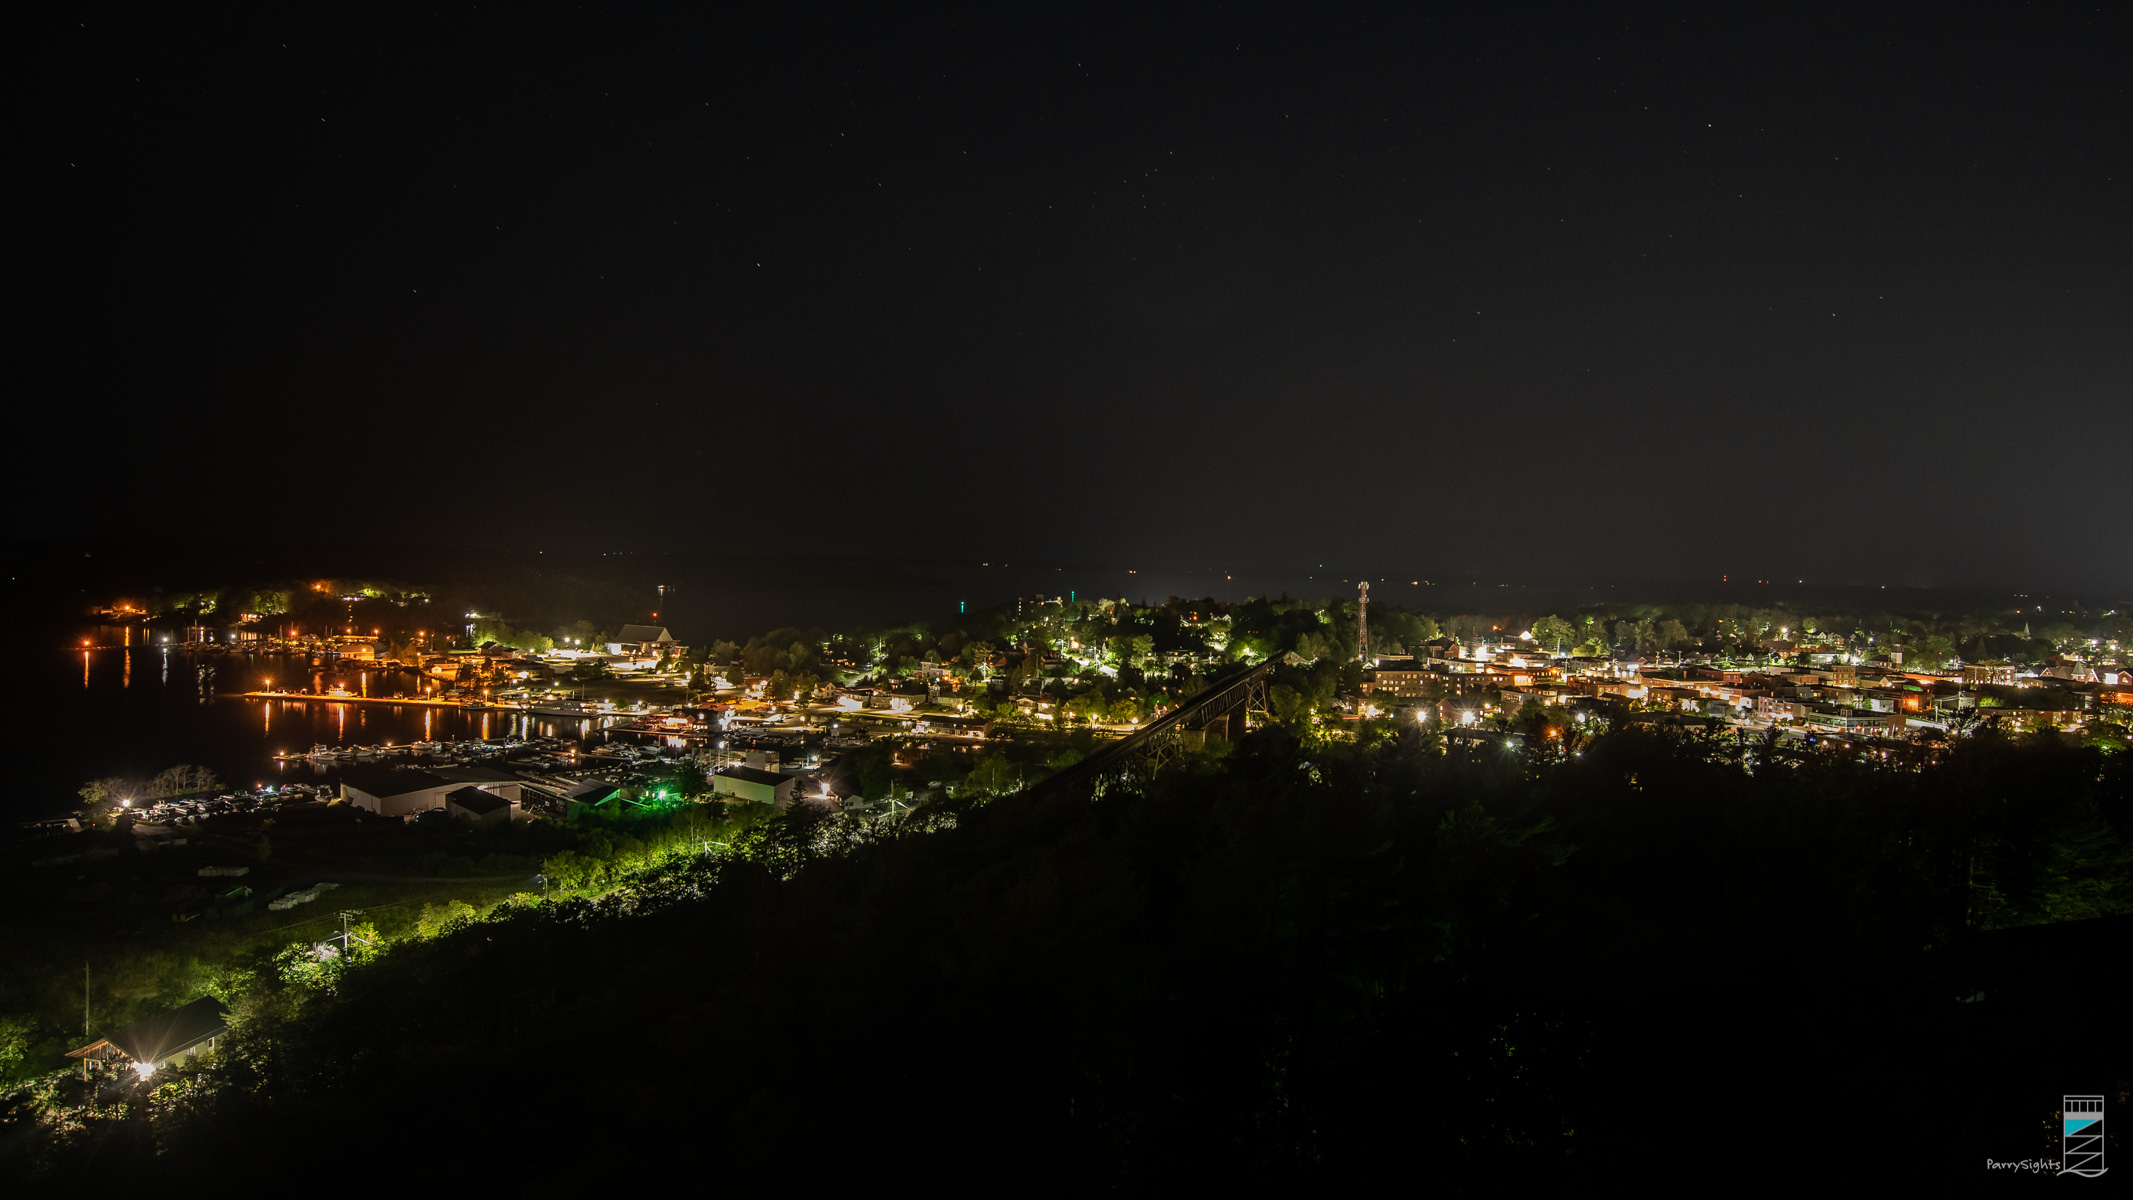 Town of Parry Sound seen from atop Tower Hill